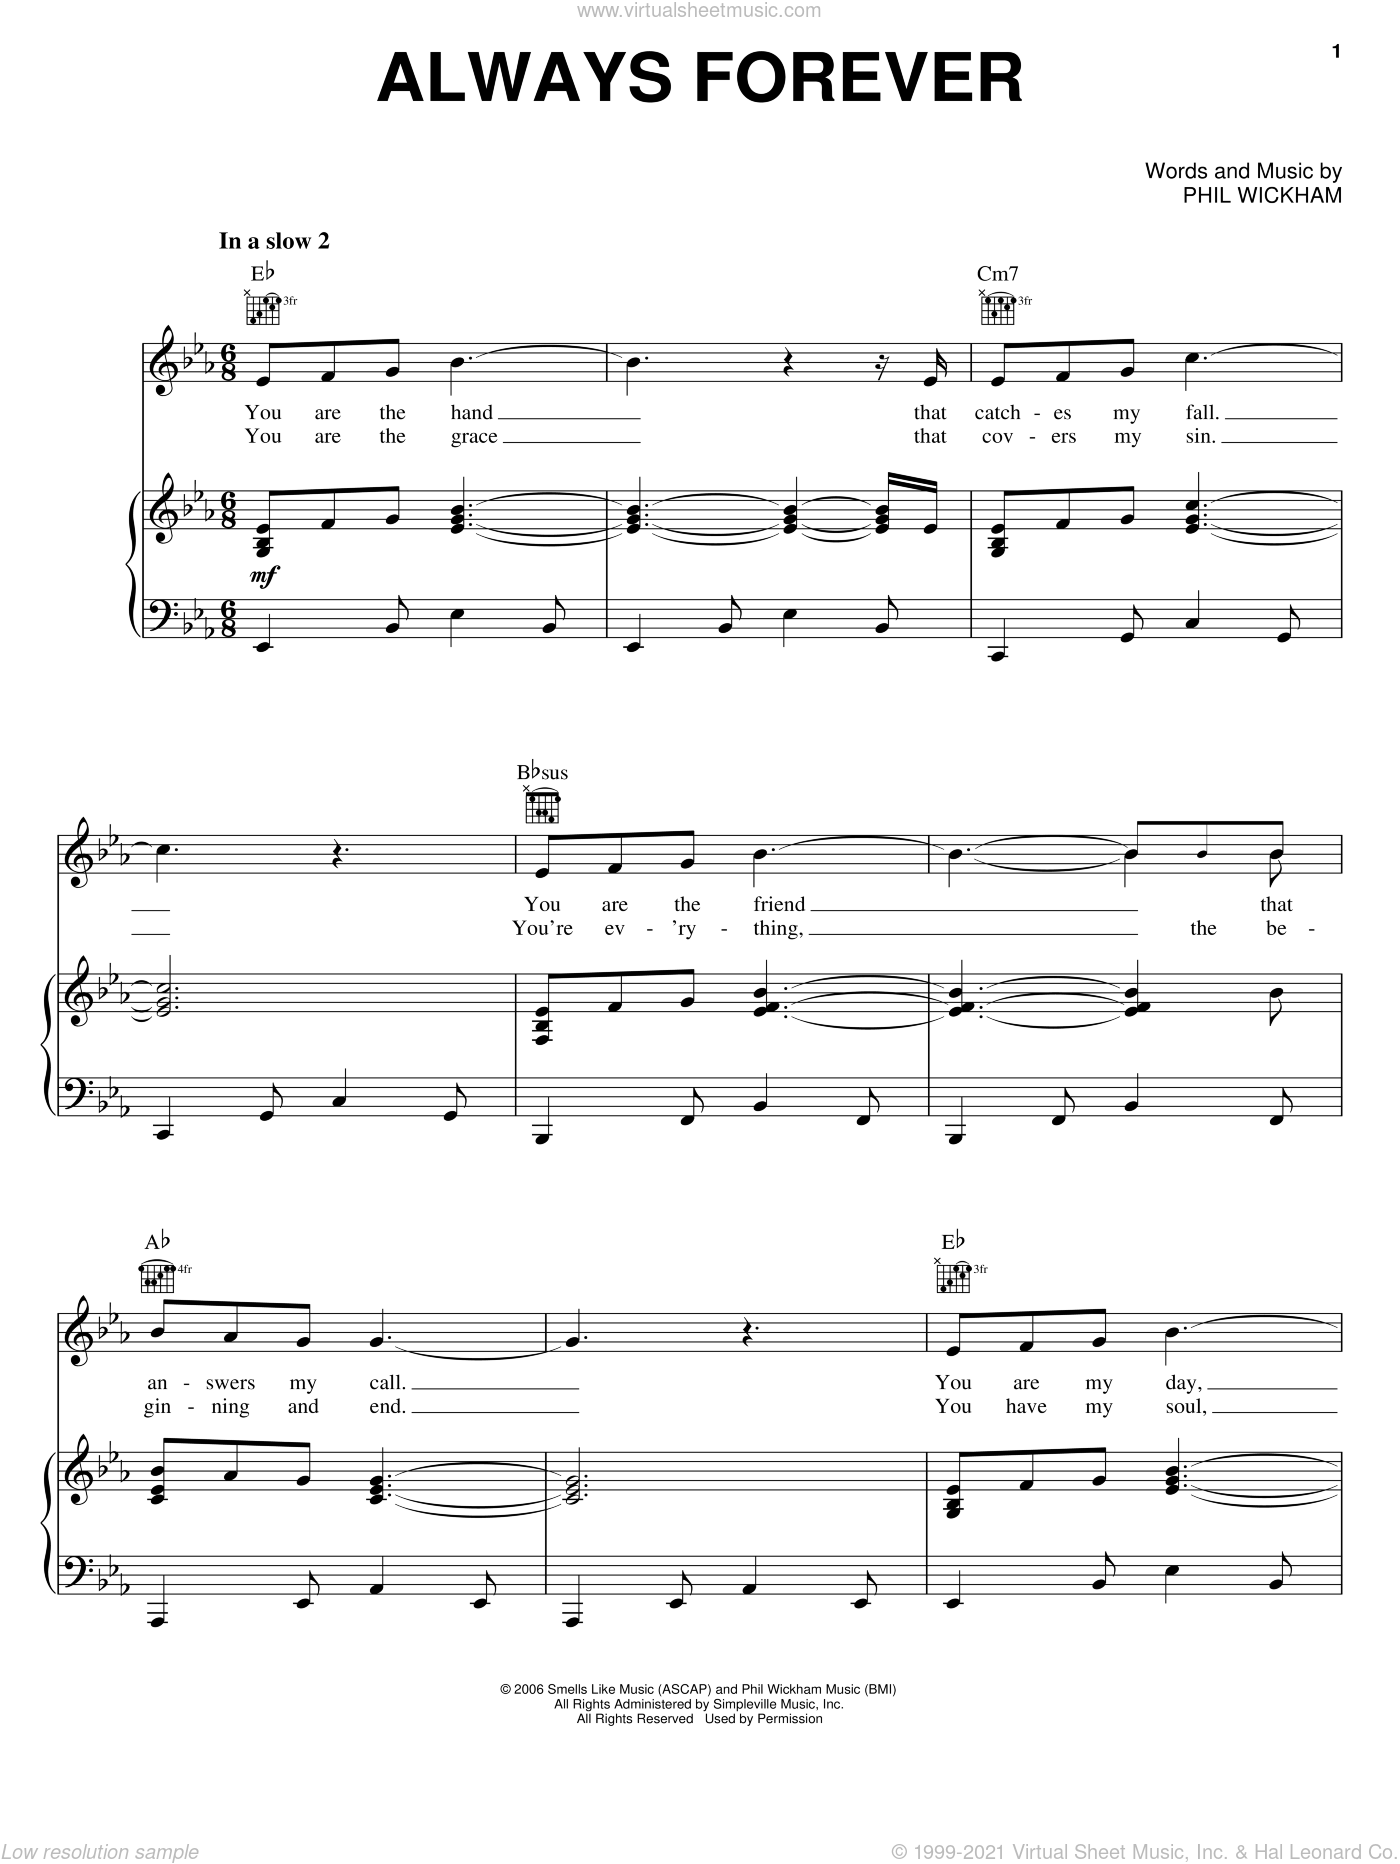 Always Forever sheet music for voice, piano or guitar by Phil Wickham, intermediate skill level